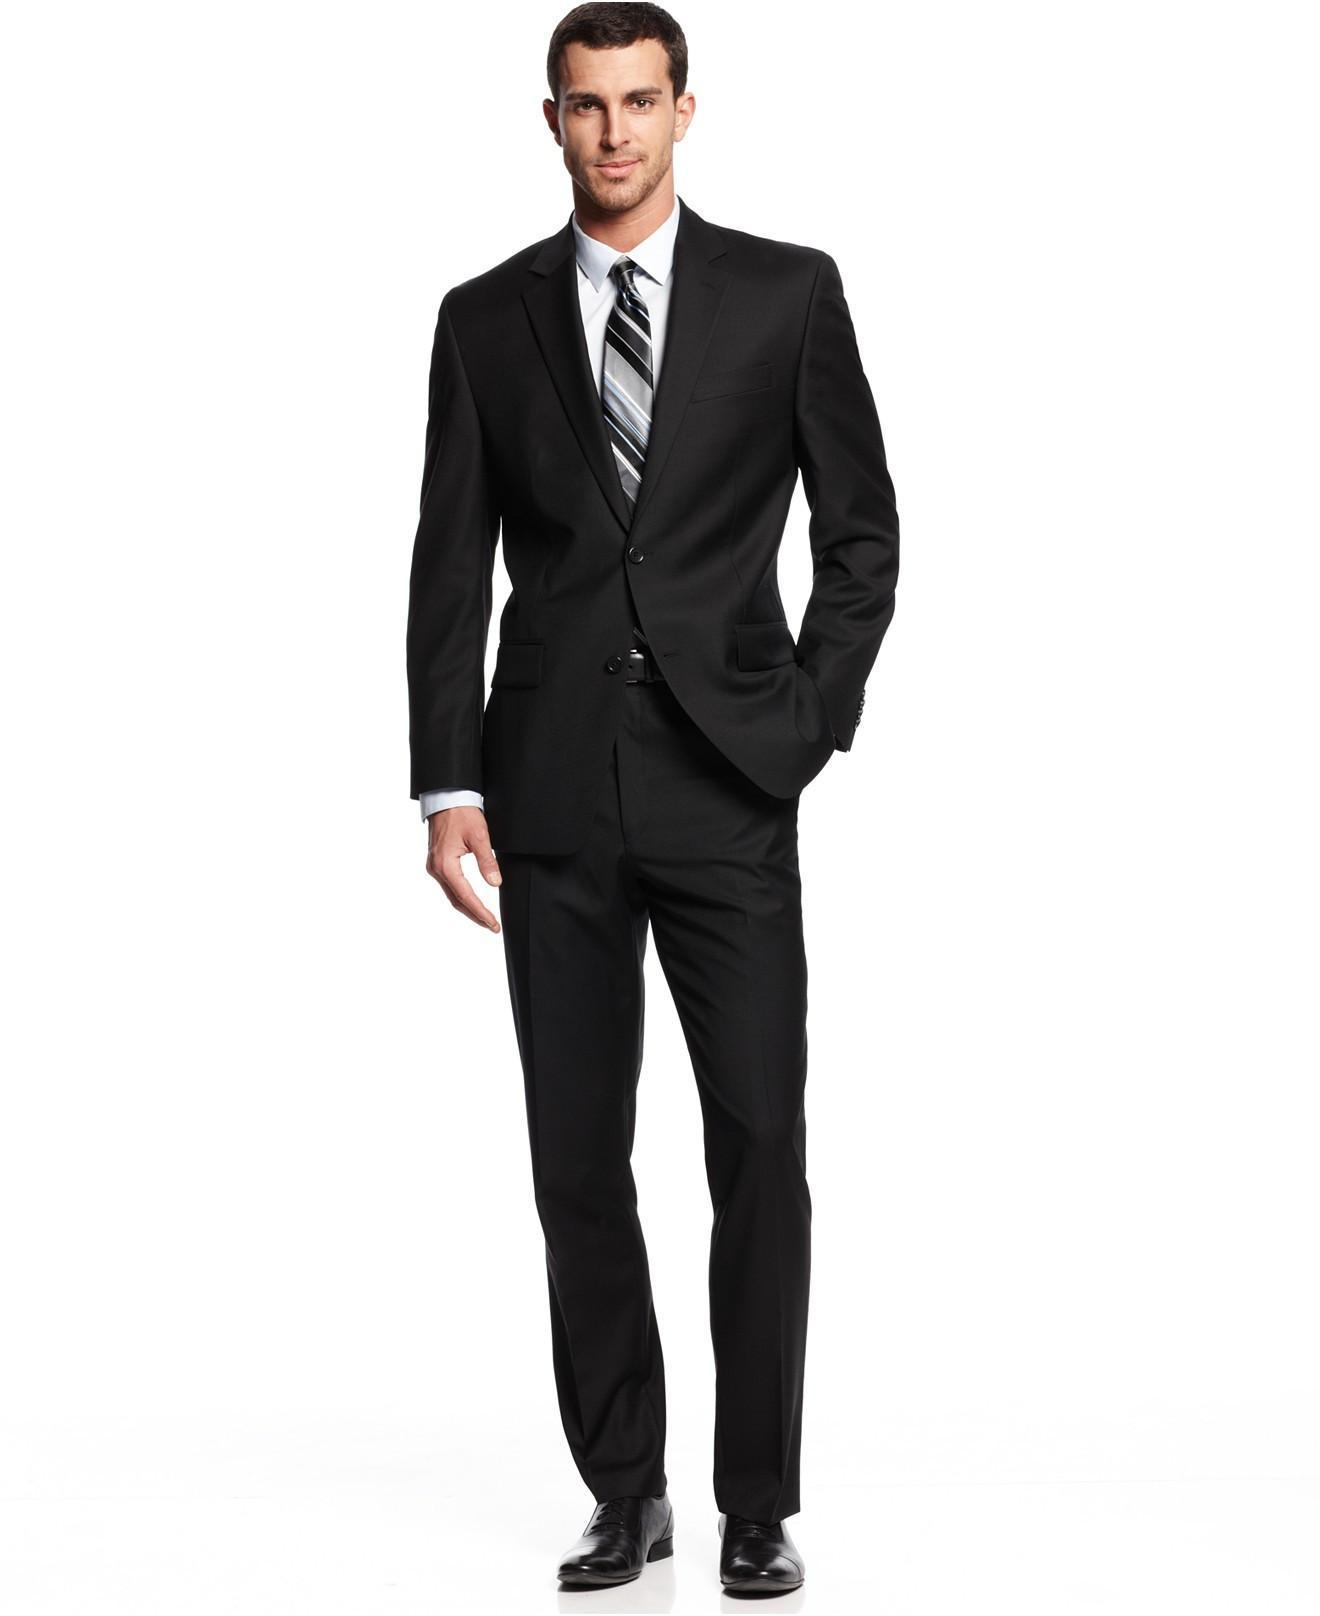 Cheap Latest Two Piece Suit Men Black Suit Design Custom Suits The ...